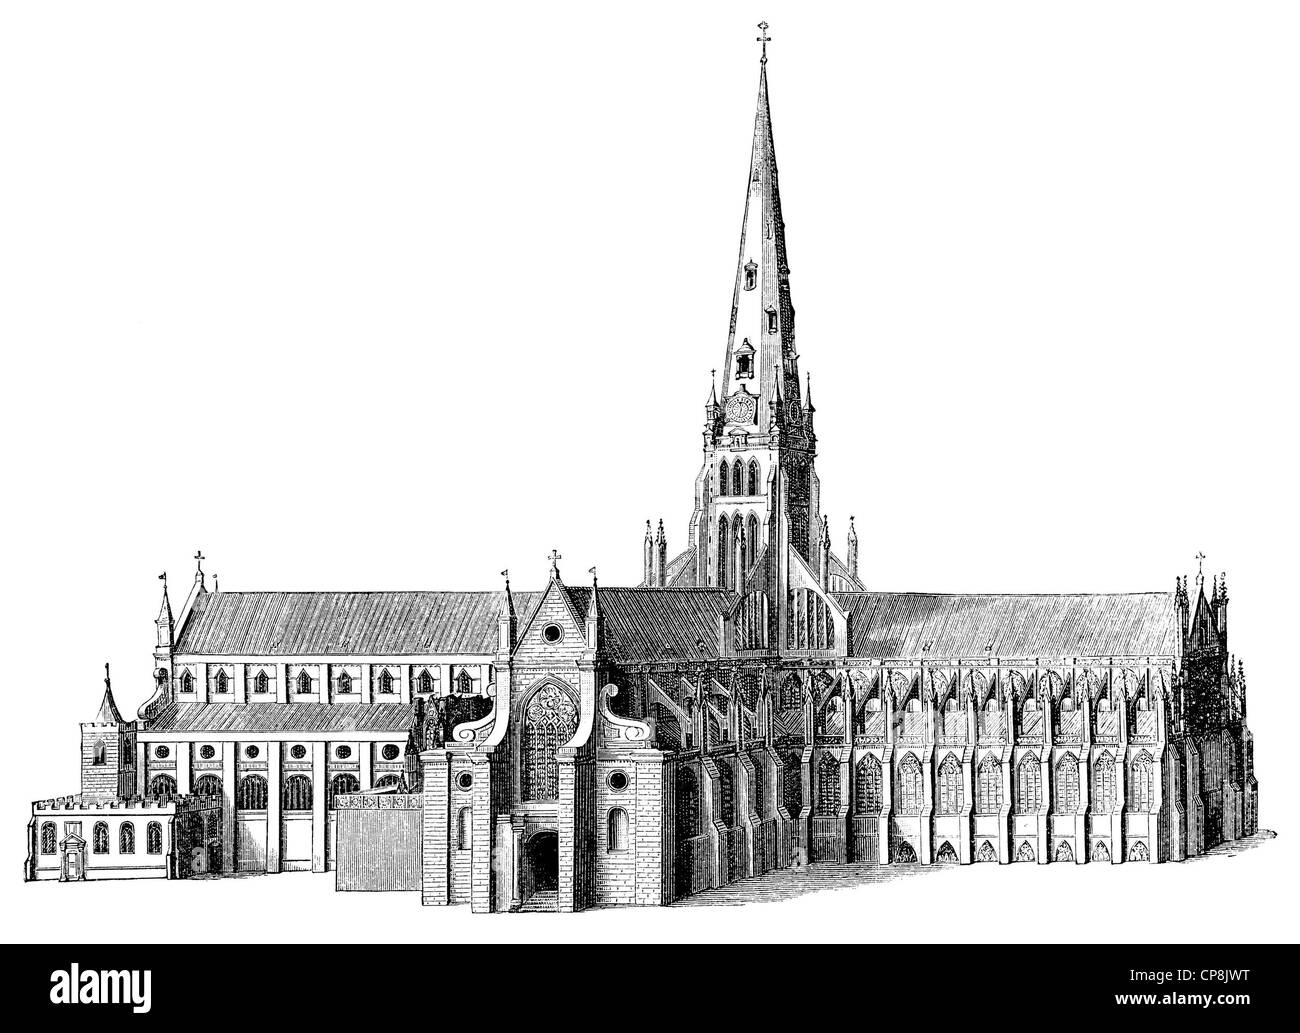 depiction of the 17th Century predecessor of St Paul's Cathedral, a cathedral in London, England, United Kingdom, Stock Photo